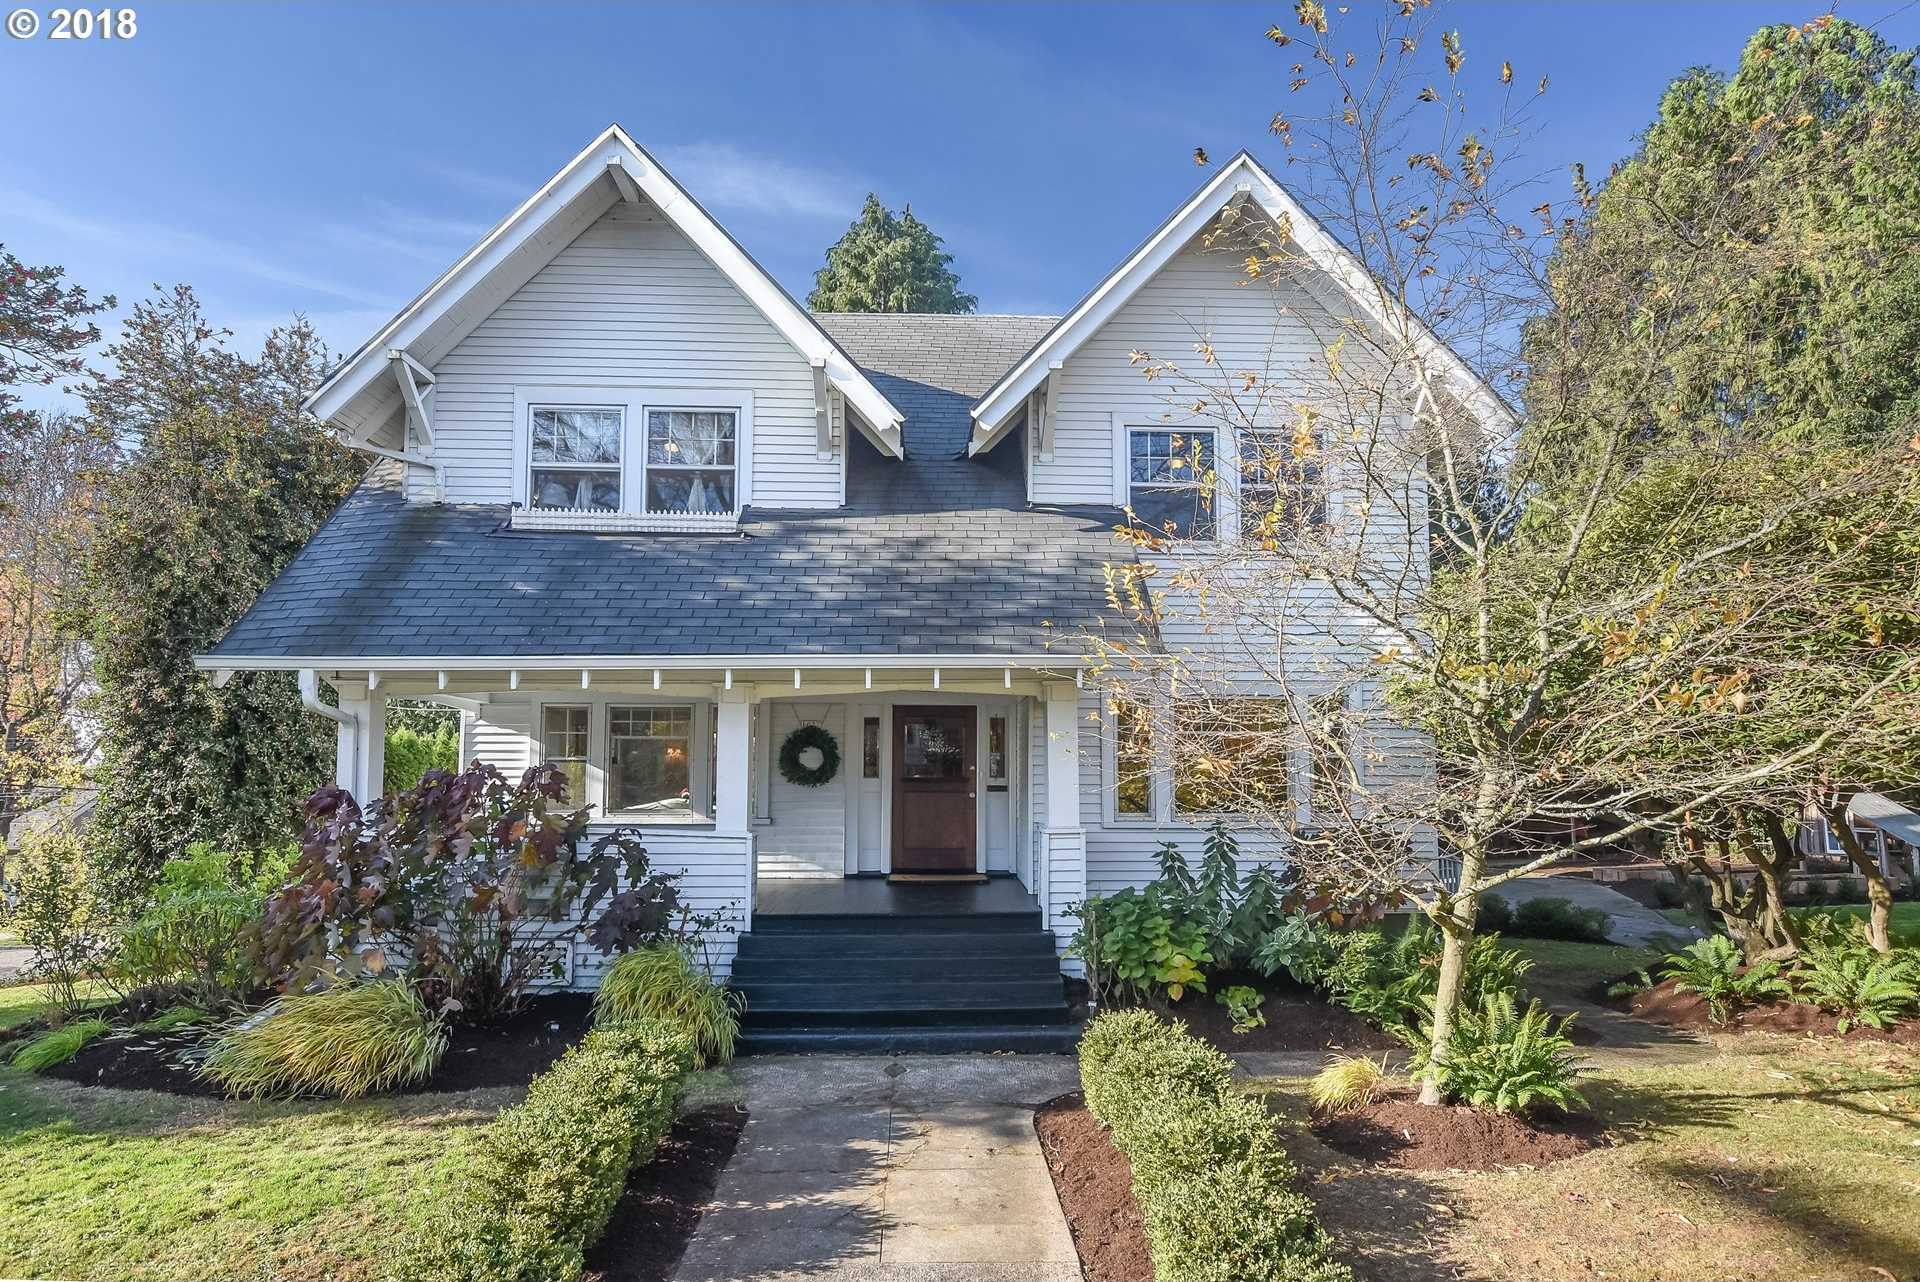 $1,192,000 - 6Br/4Ba -  for Sale in Mt Tabor, Portland